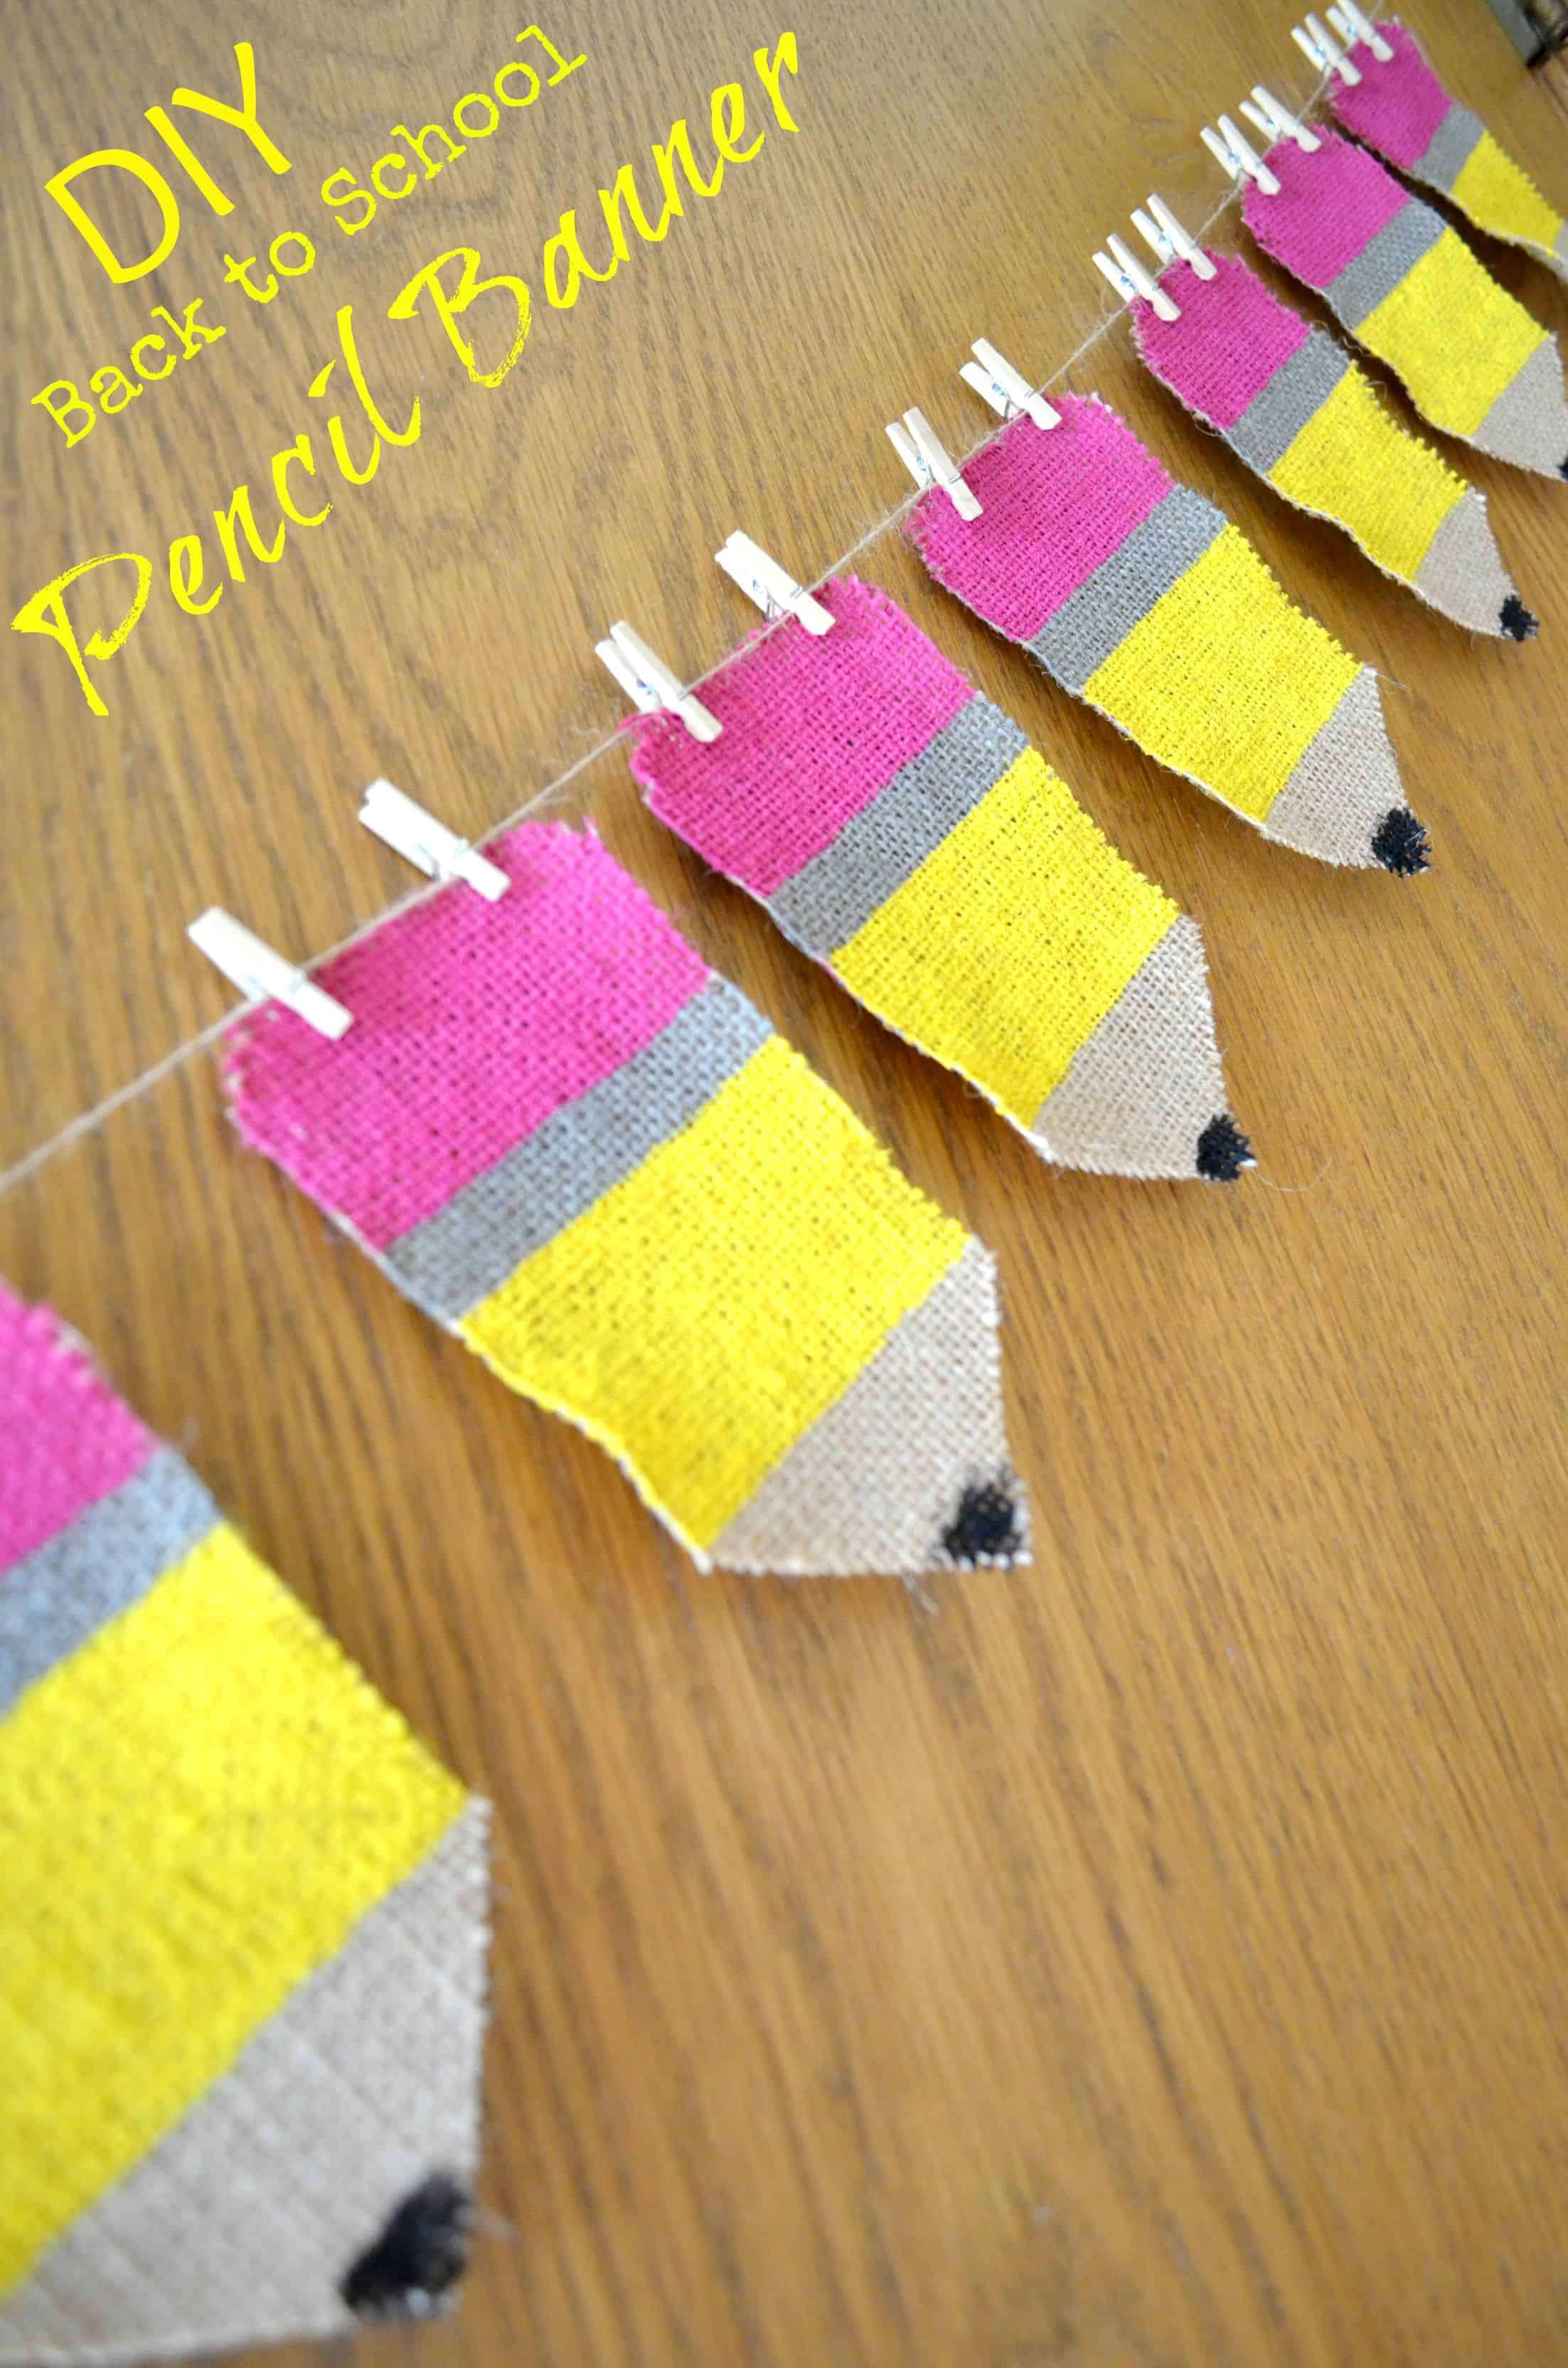 DIY Back to School Pencil Banner